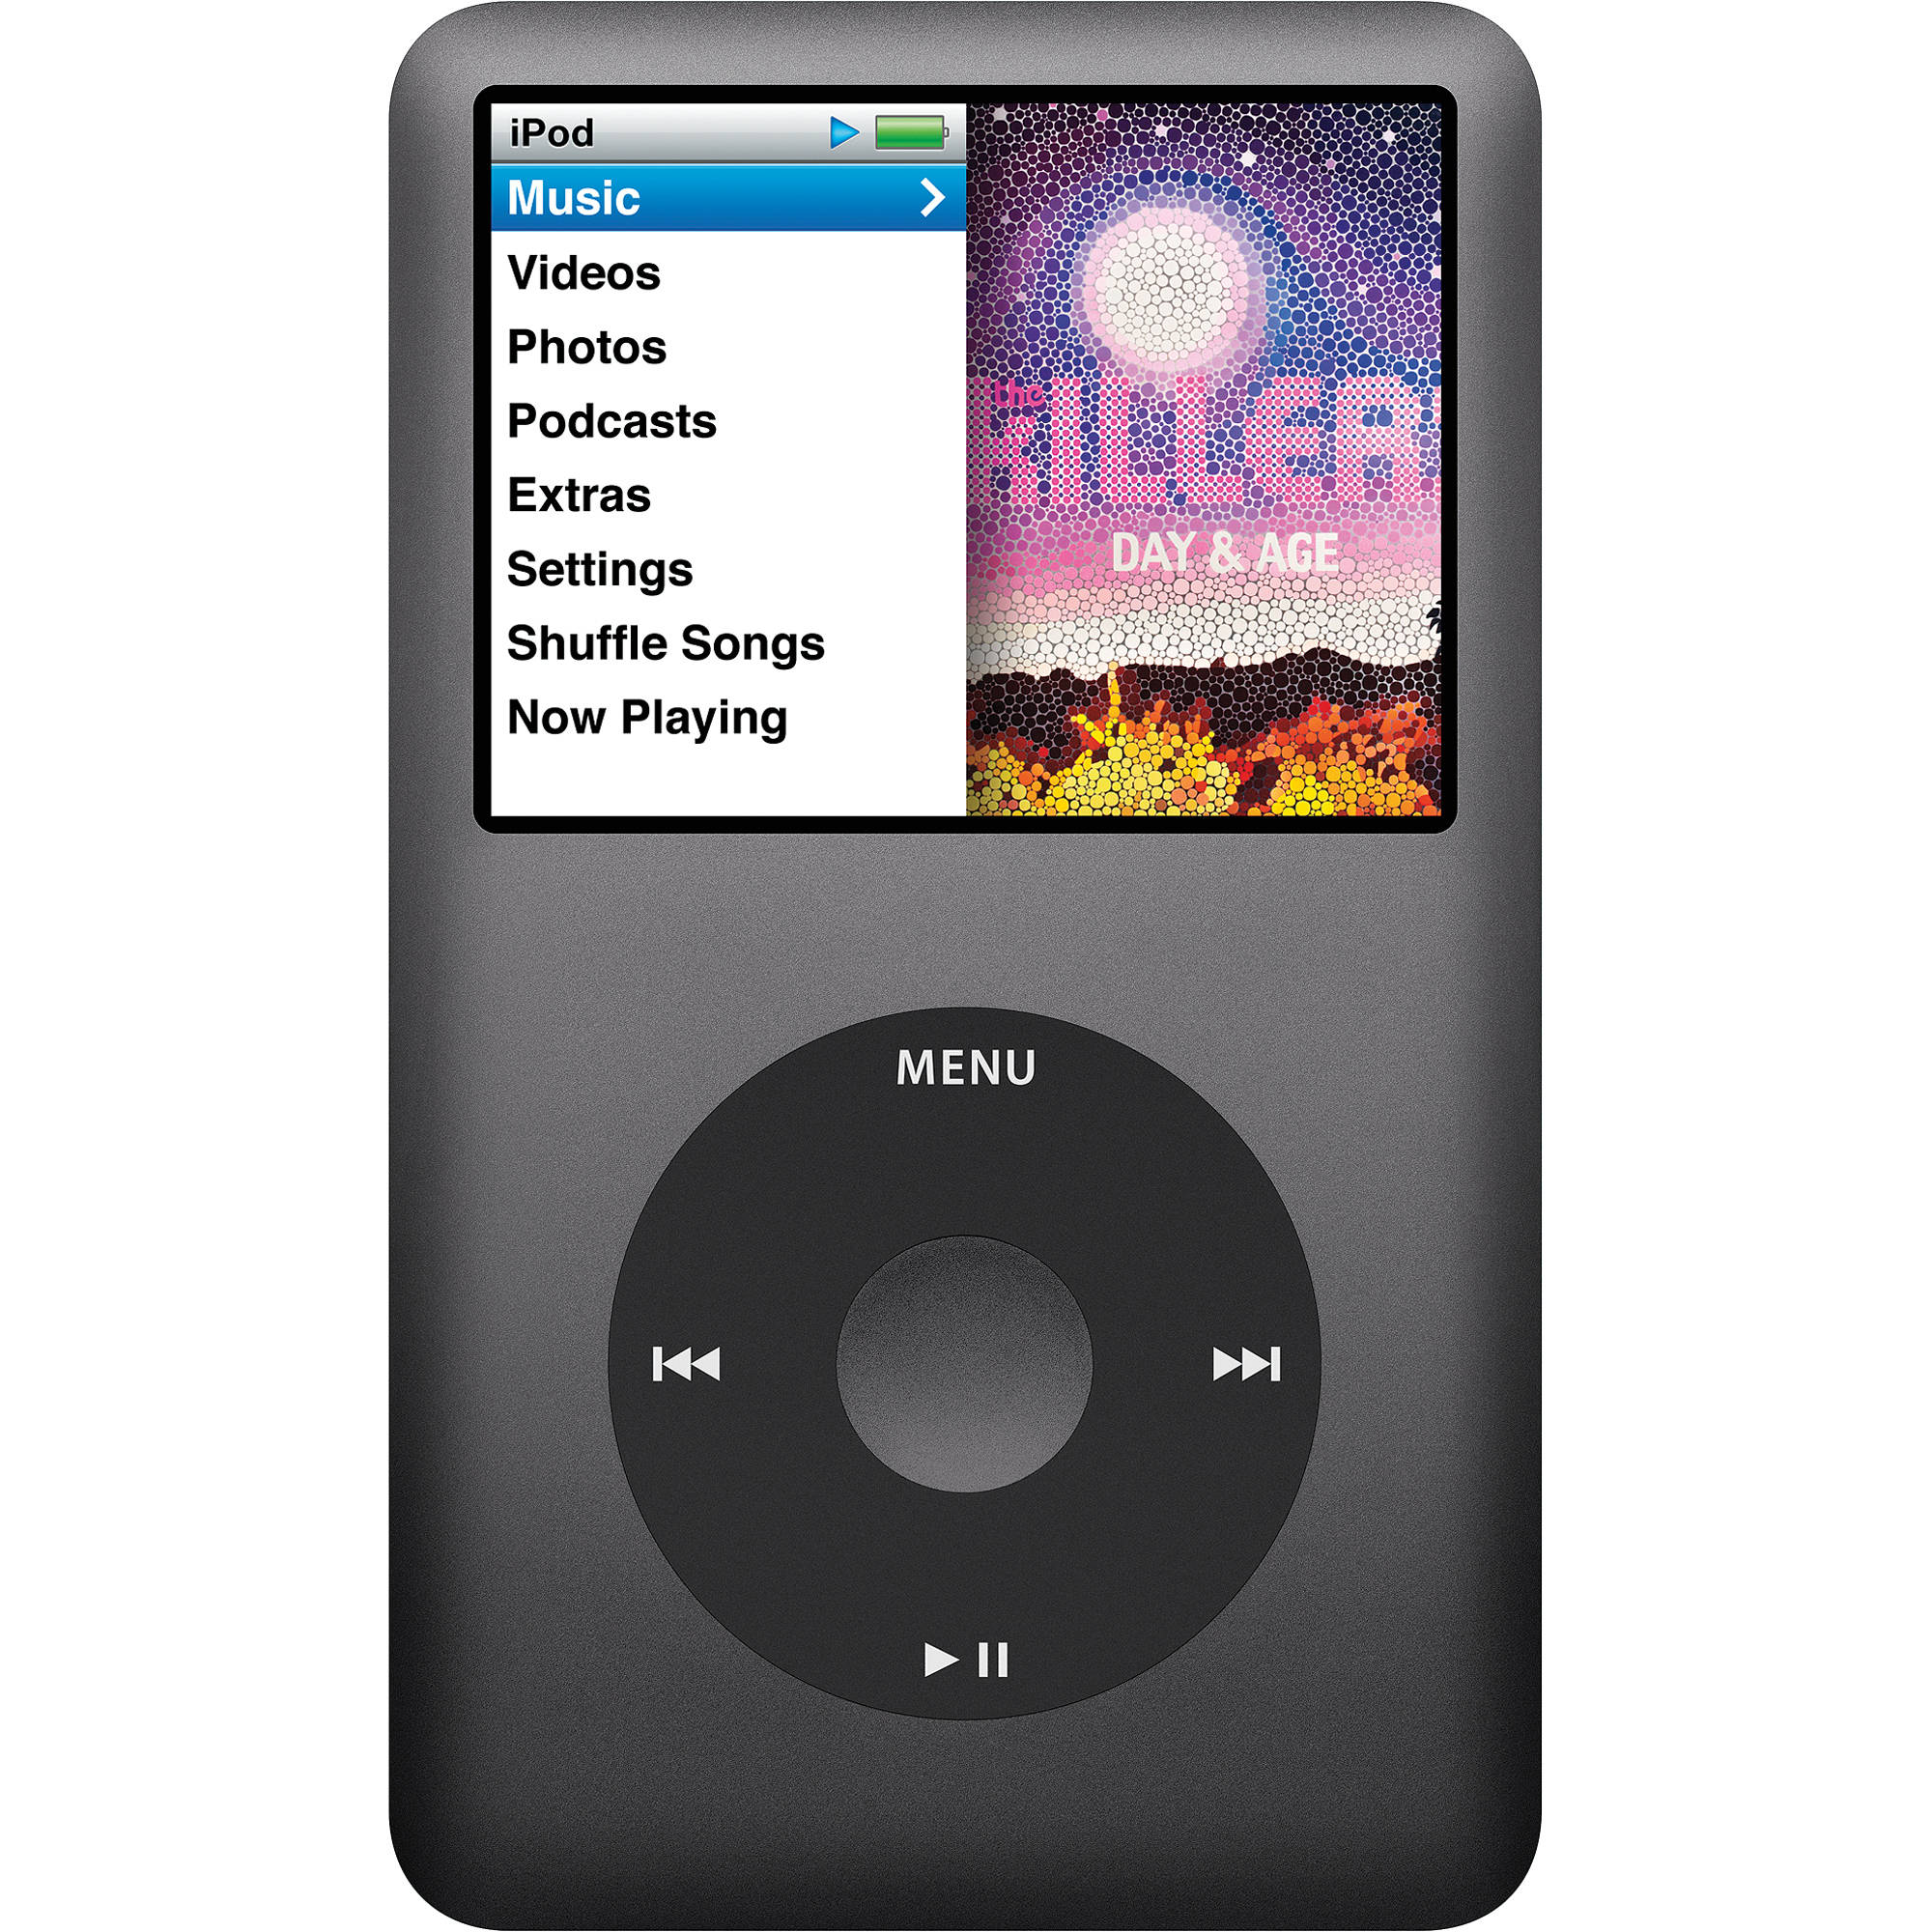 160GB New Other Space Grey Apple iPod Classic 7th Generation Black